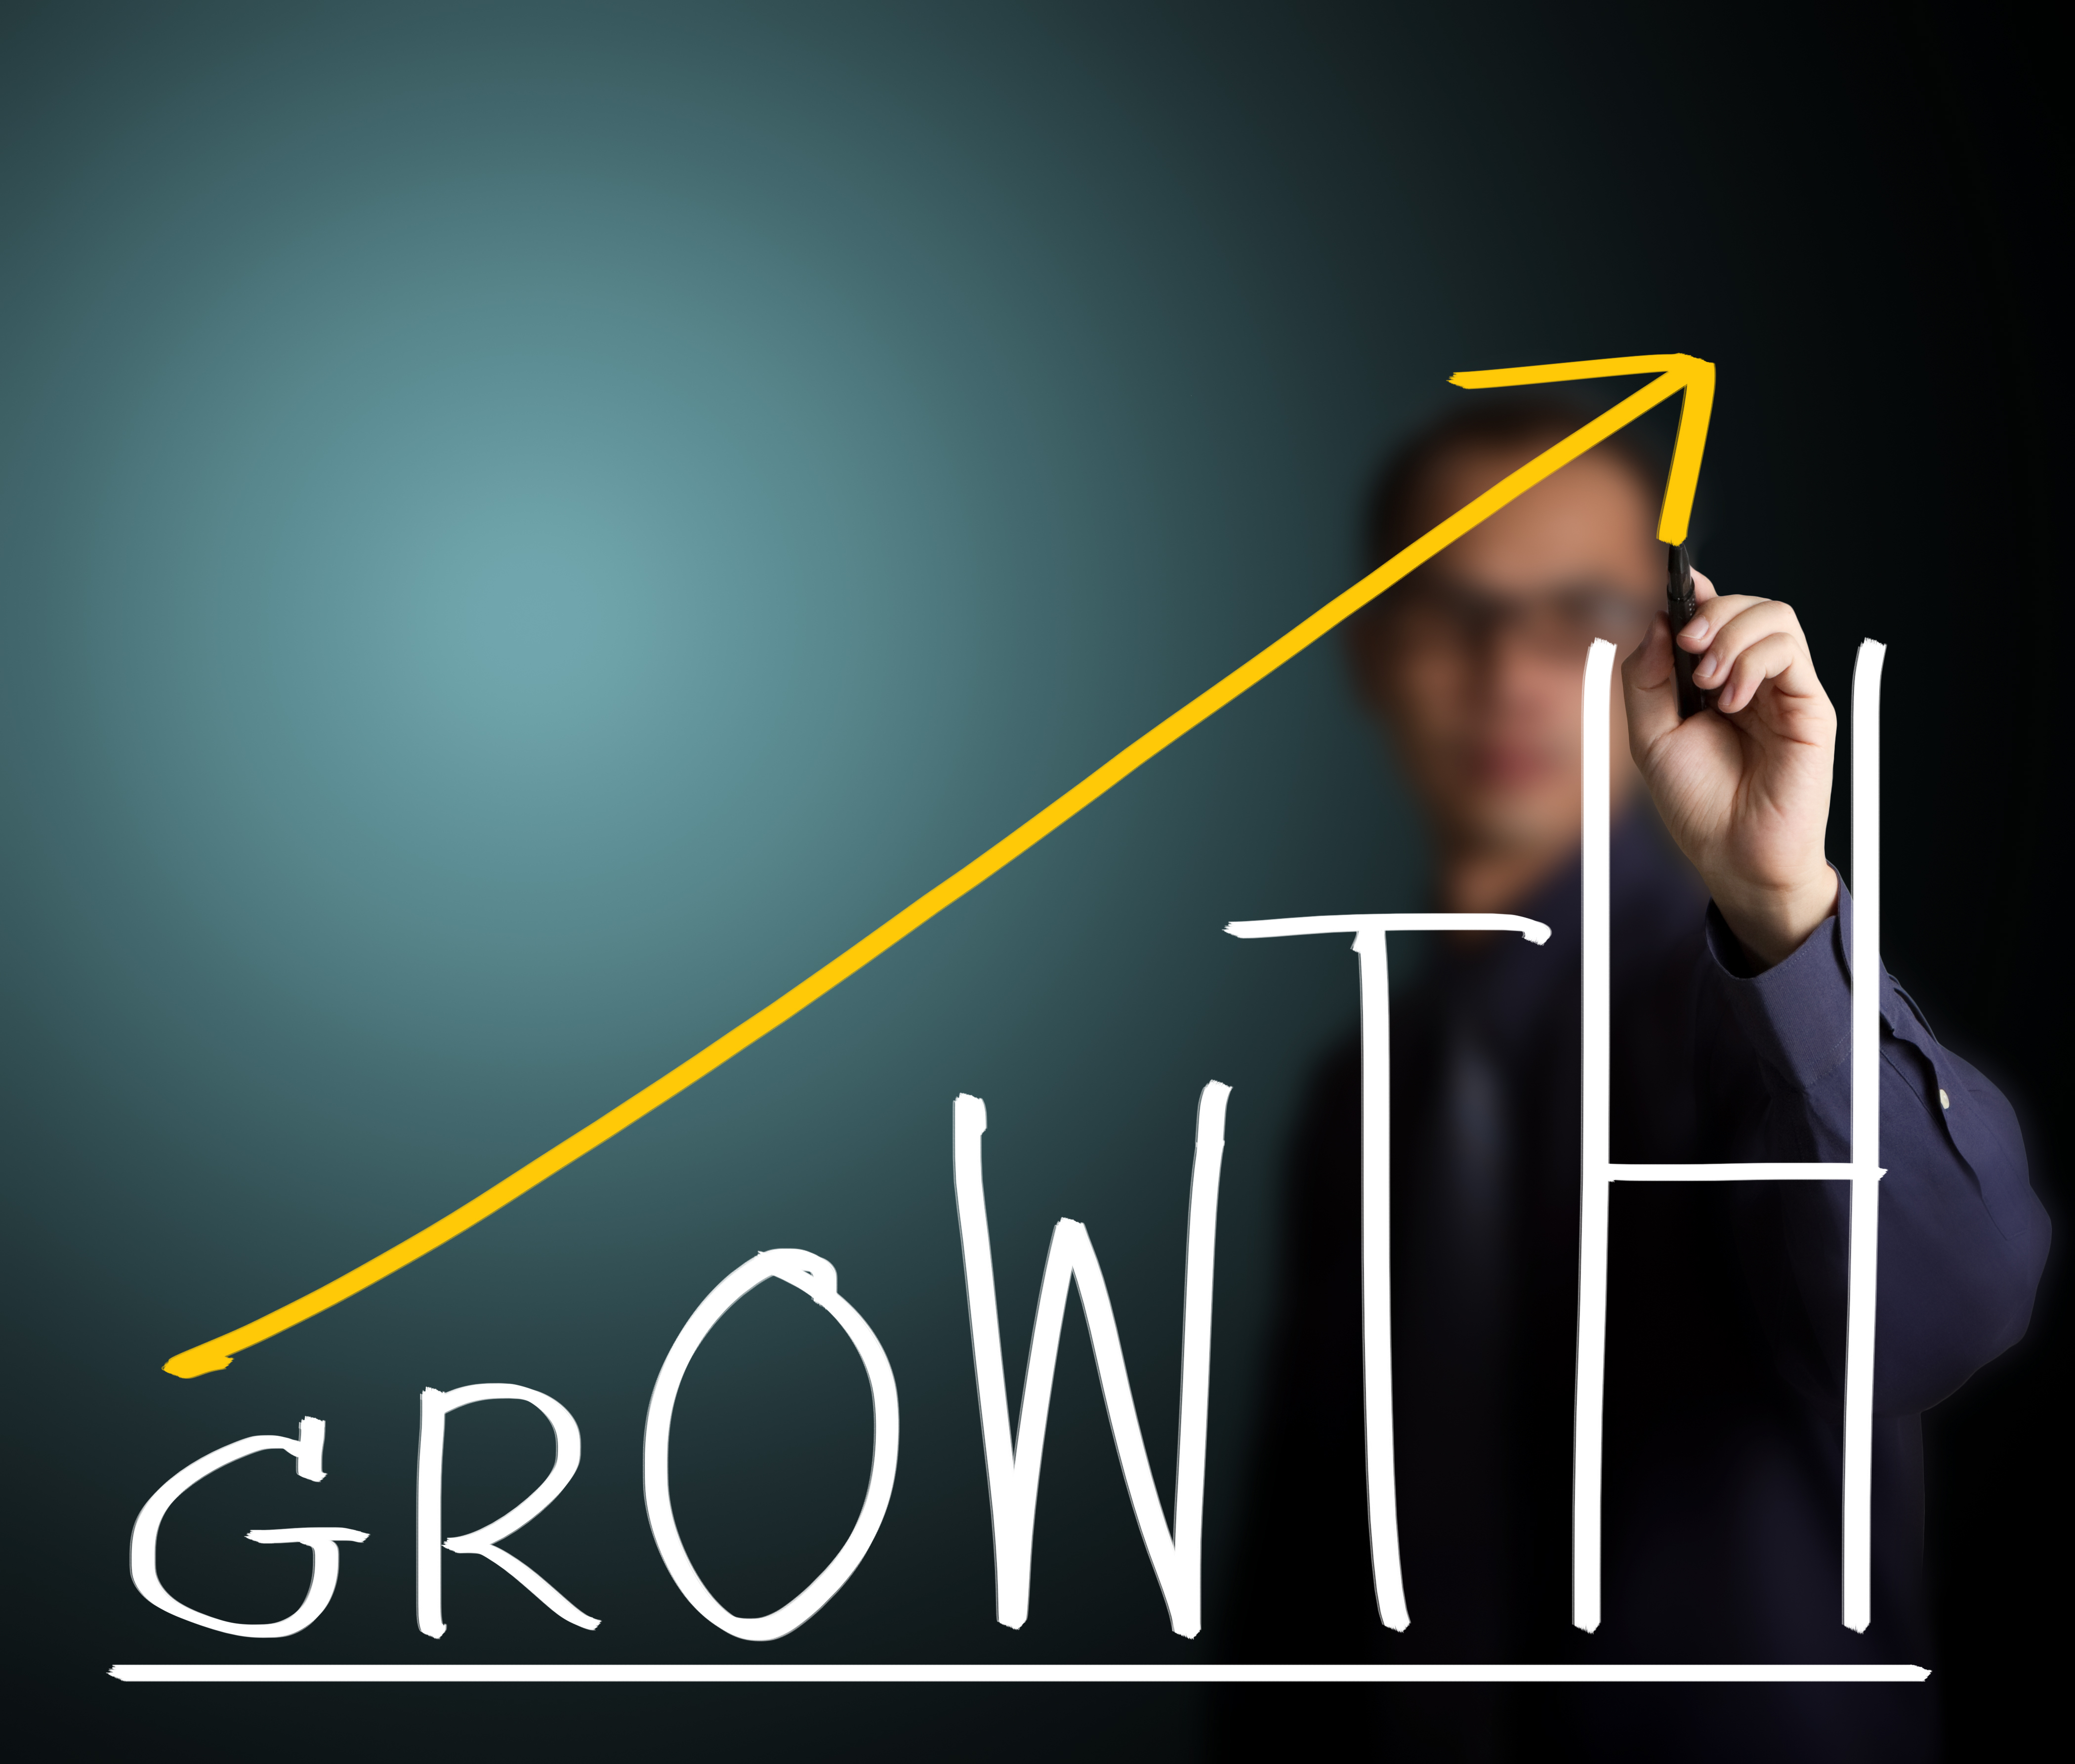 Business growth plans